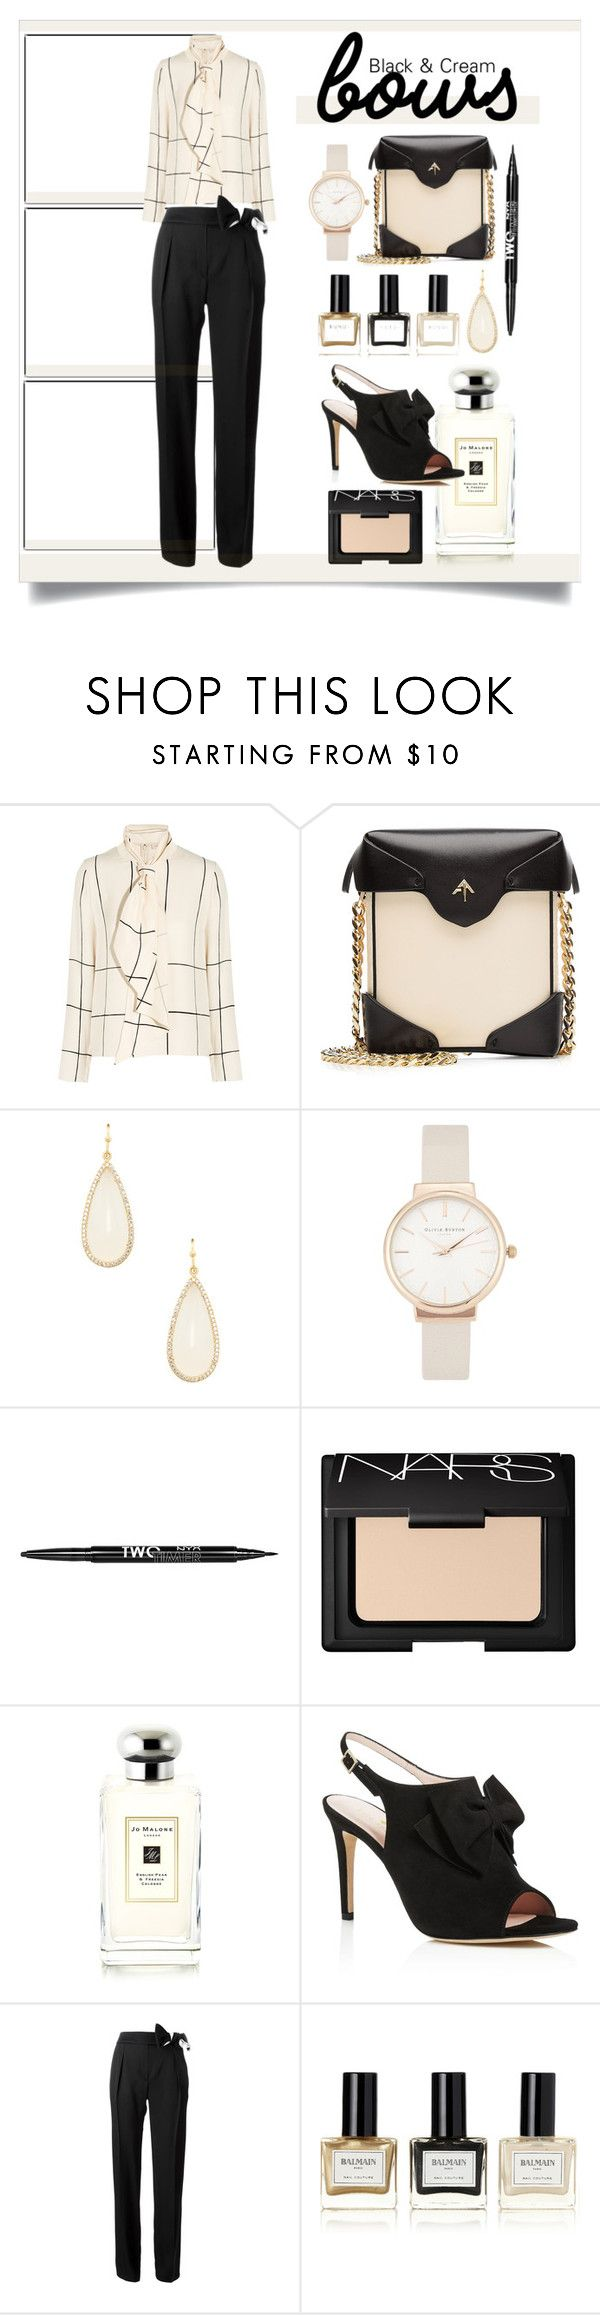 """""""Bows in Black & Cream"""" by elimarga ❤ liked on Polyvore featuring Tory Burch, MANU Atelier, Olivia Burton, Charlotte Russe, NARS Cosmetics, Jo Malone, Kate Spade, Lanvin and Balmain"""